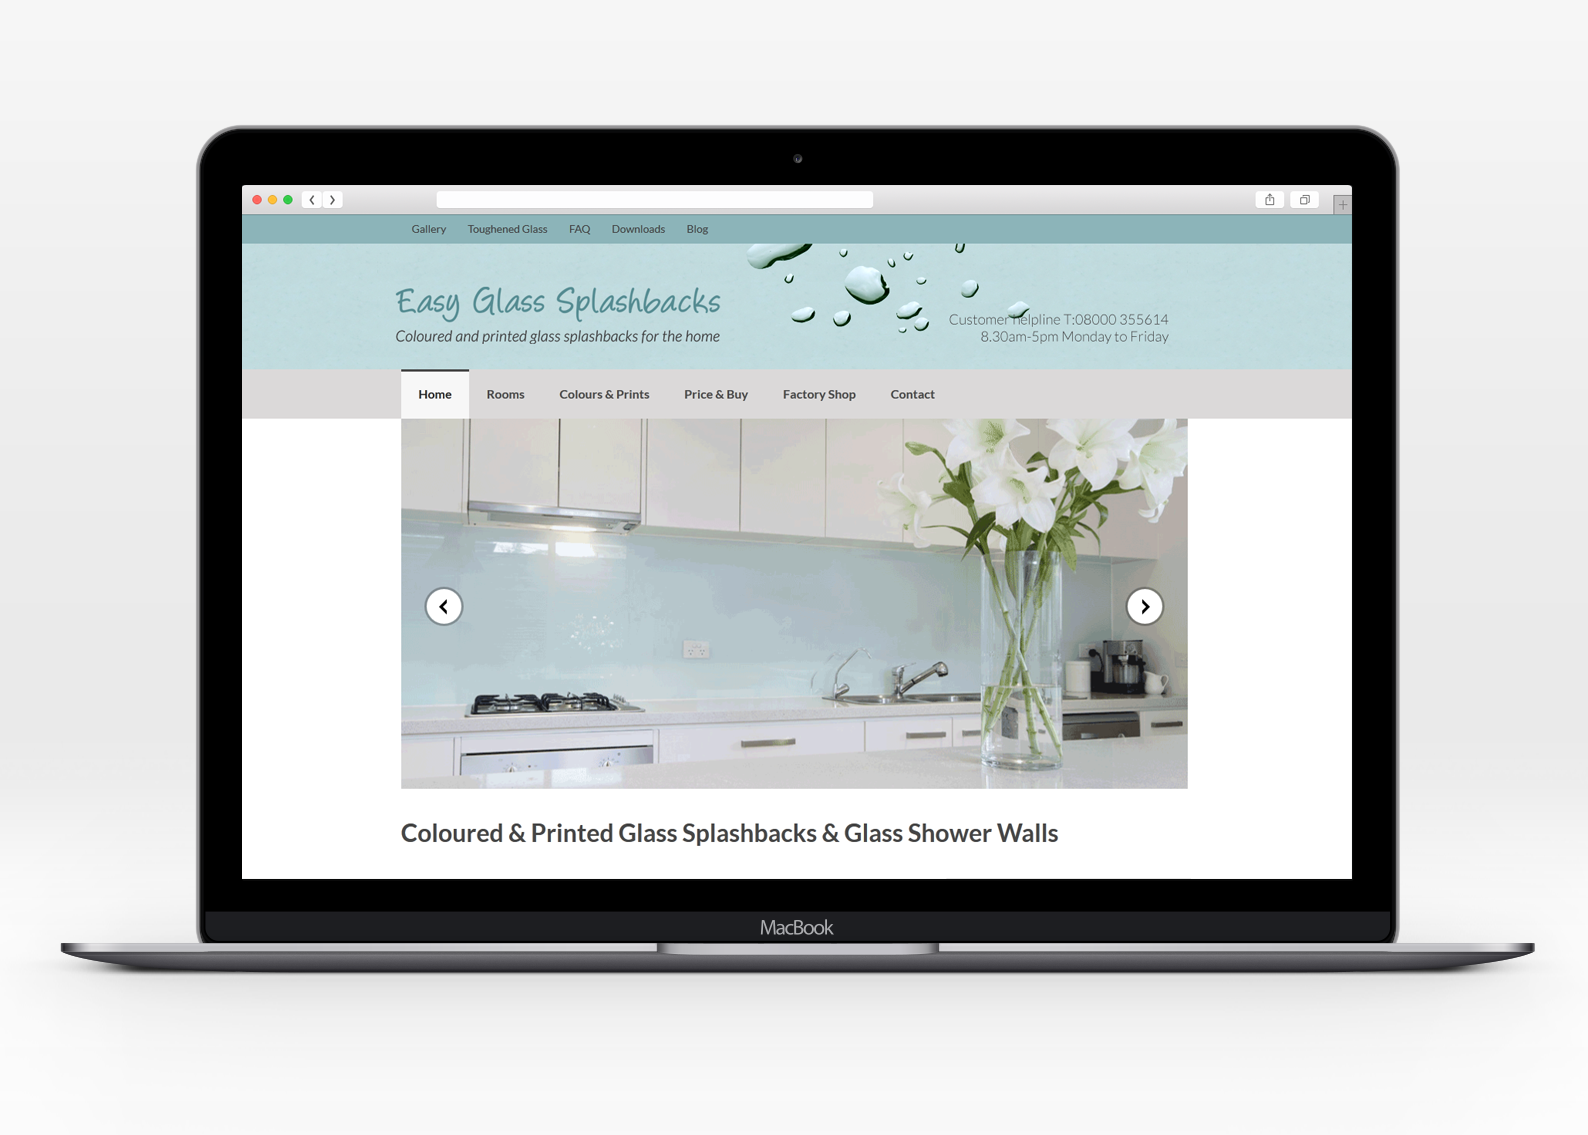 Ecommerce shopping for Easy Glass Splashbacks